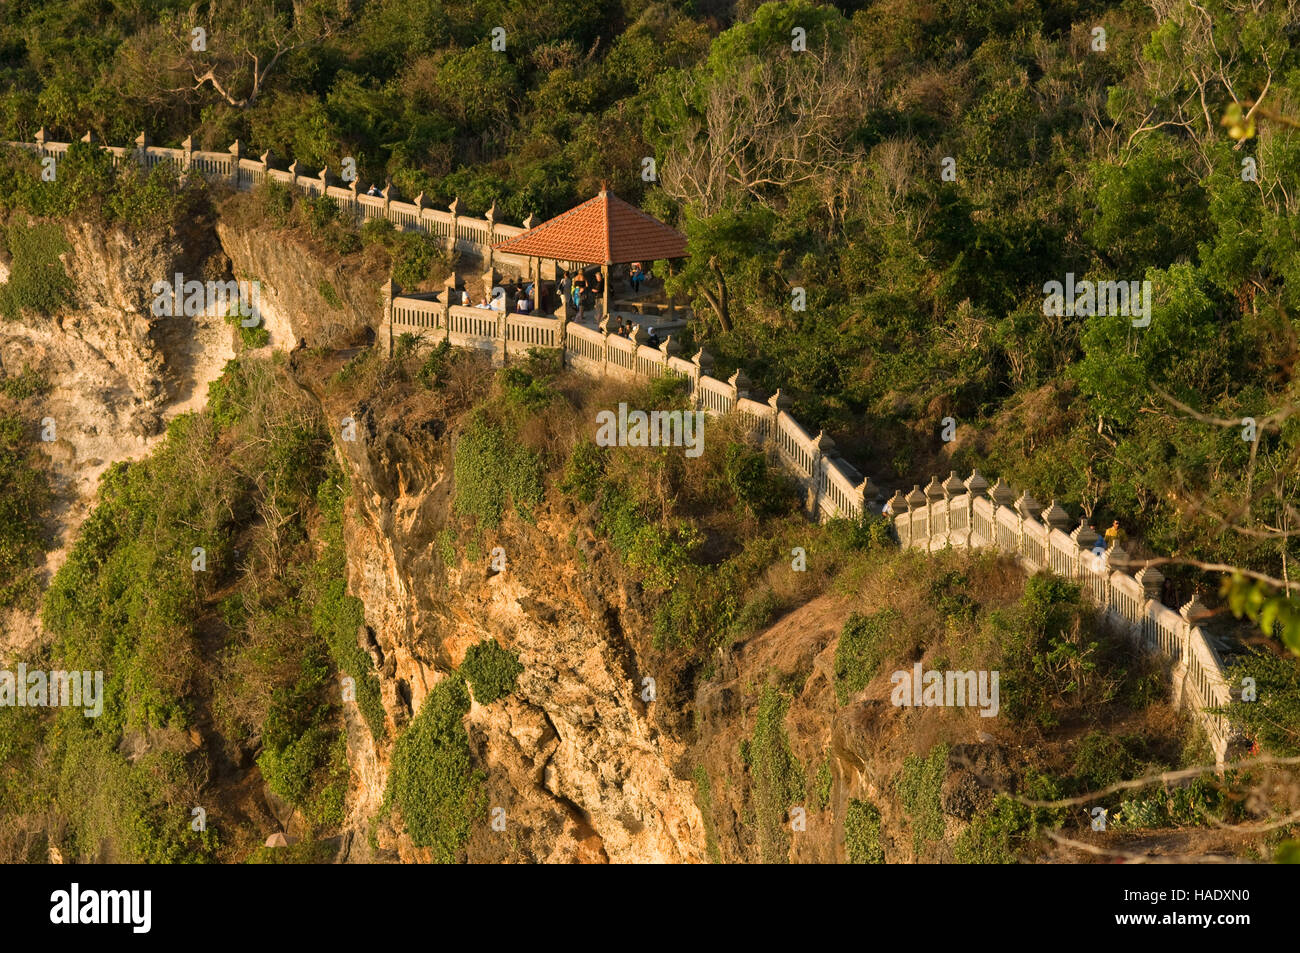 Cliffs next to the Ulu Watu temple Pura Luhur. Bali. Uluwatu Temple is a Hindu temple set on the cliff bank in south - Stock Image